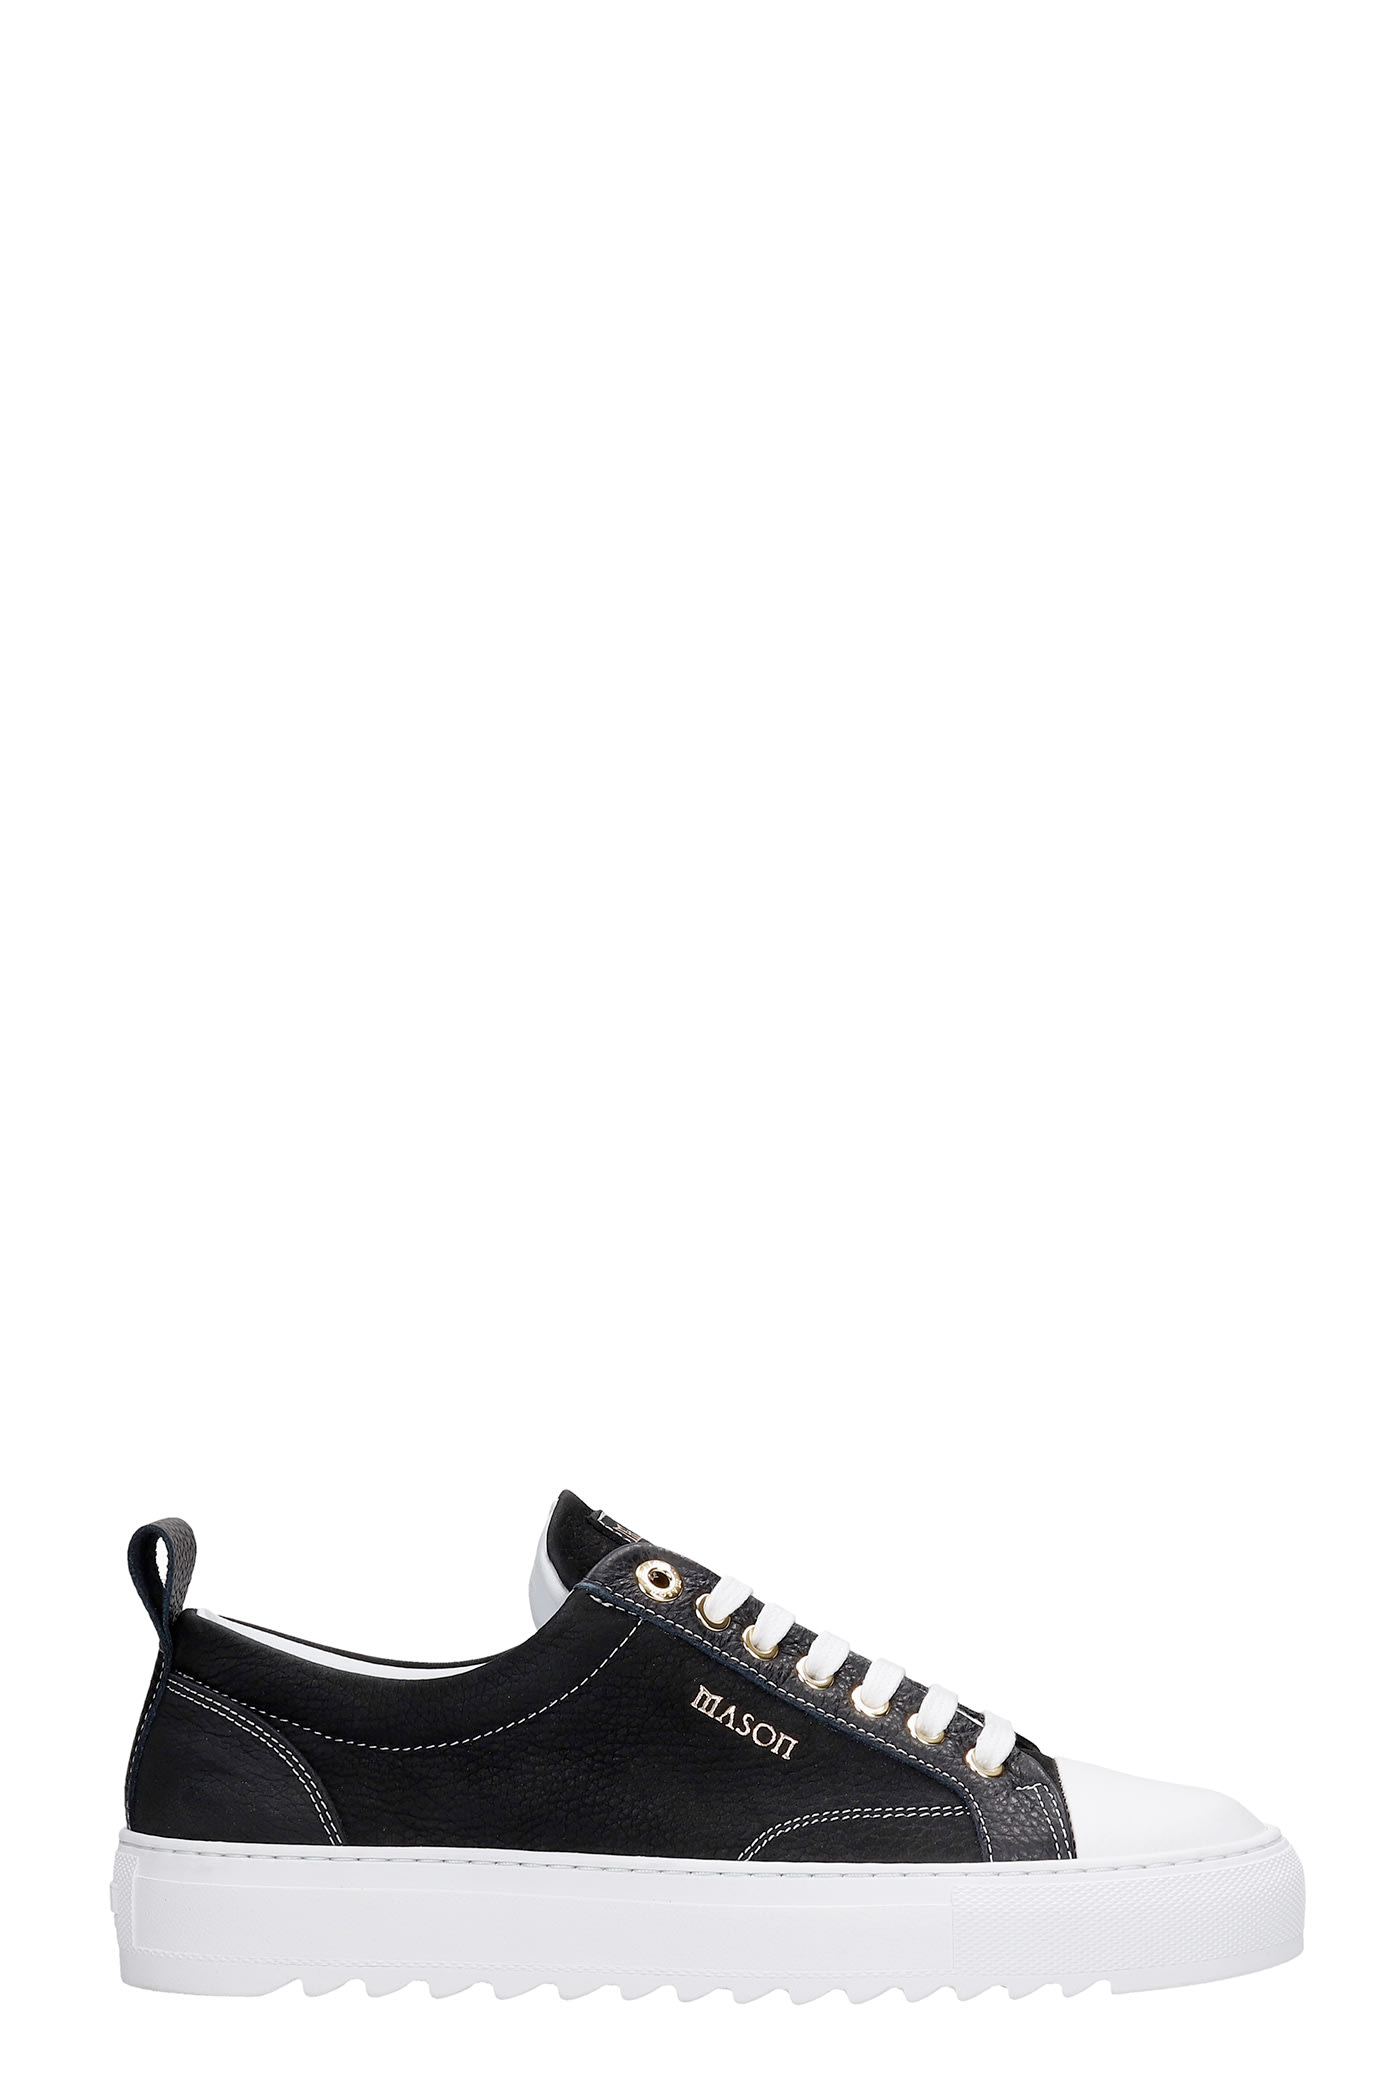 Astro Sneakers In Black Leather